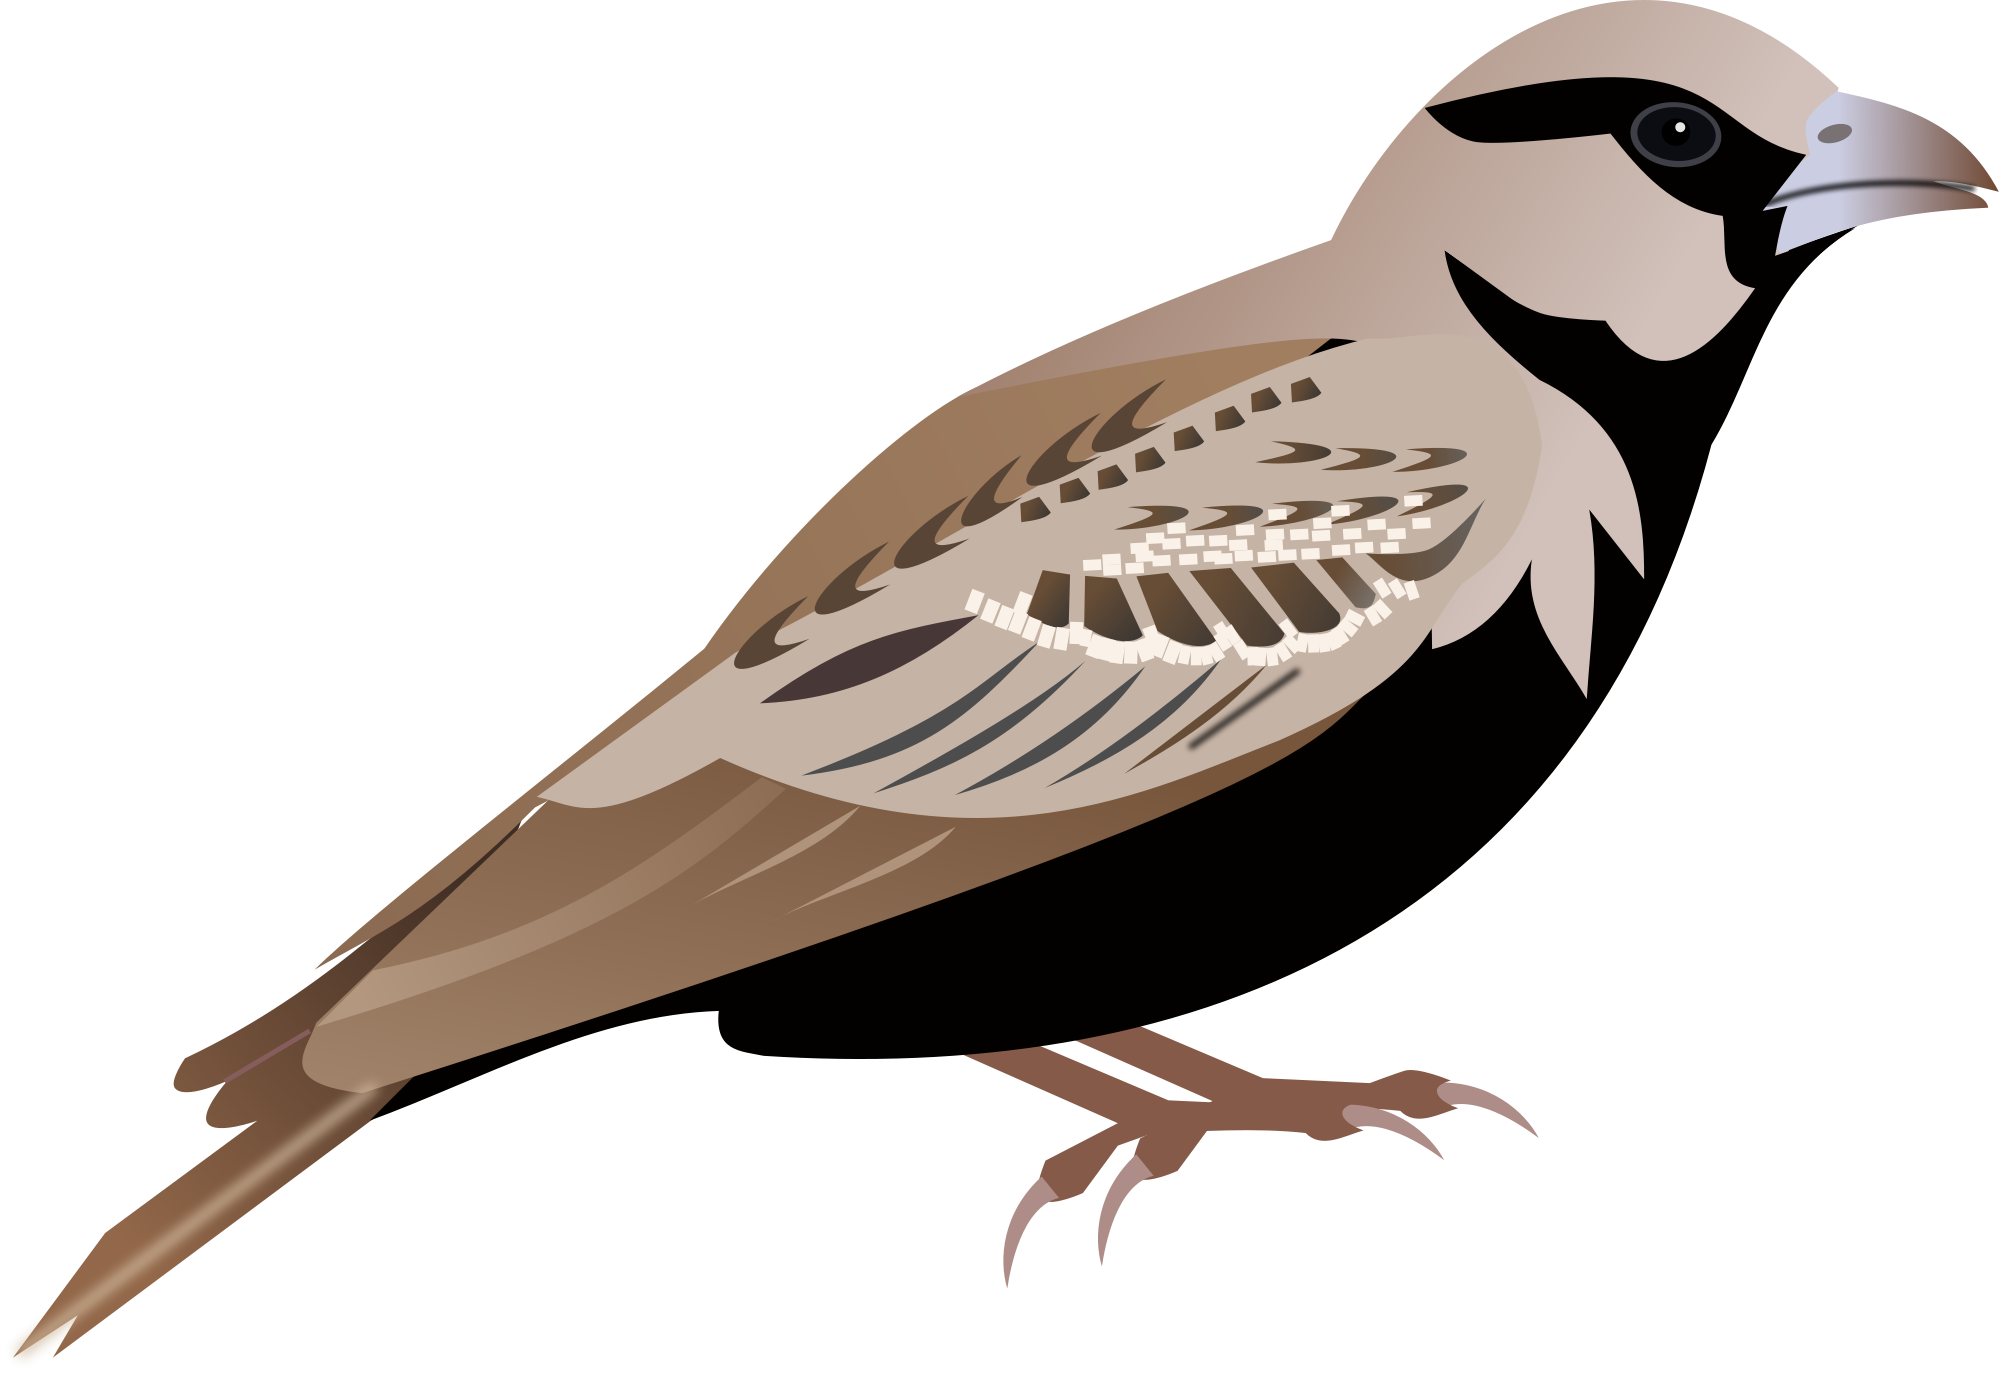 Nest clipart sparrow nest. Png images free download